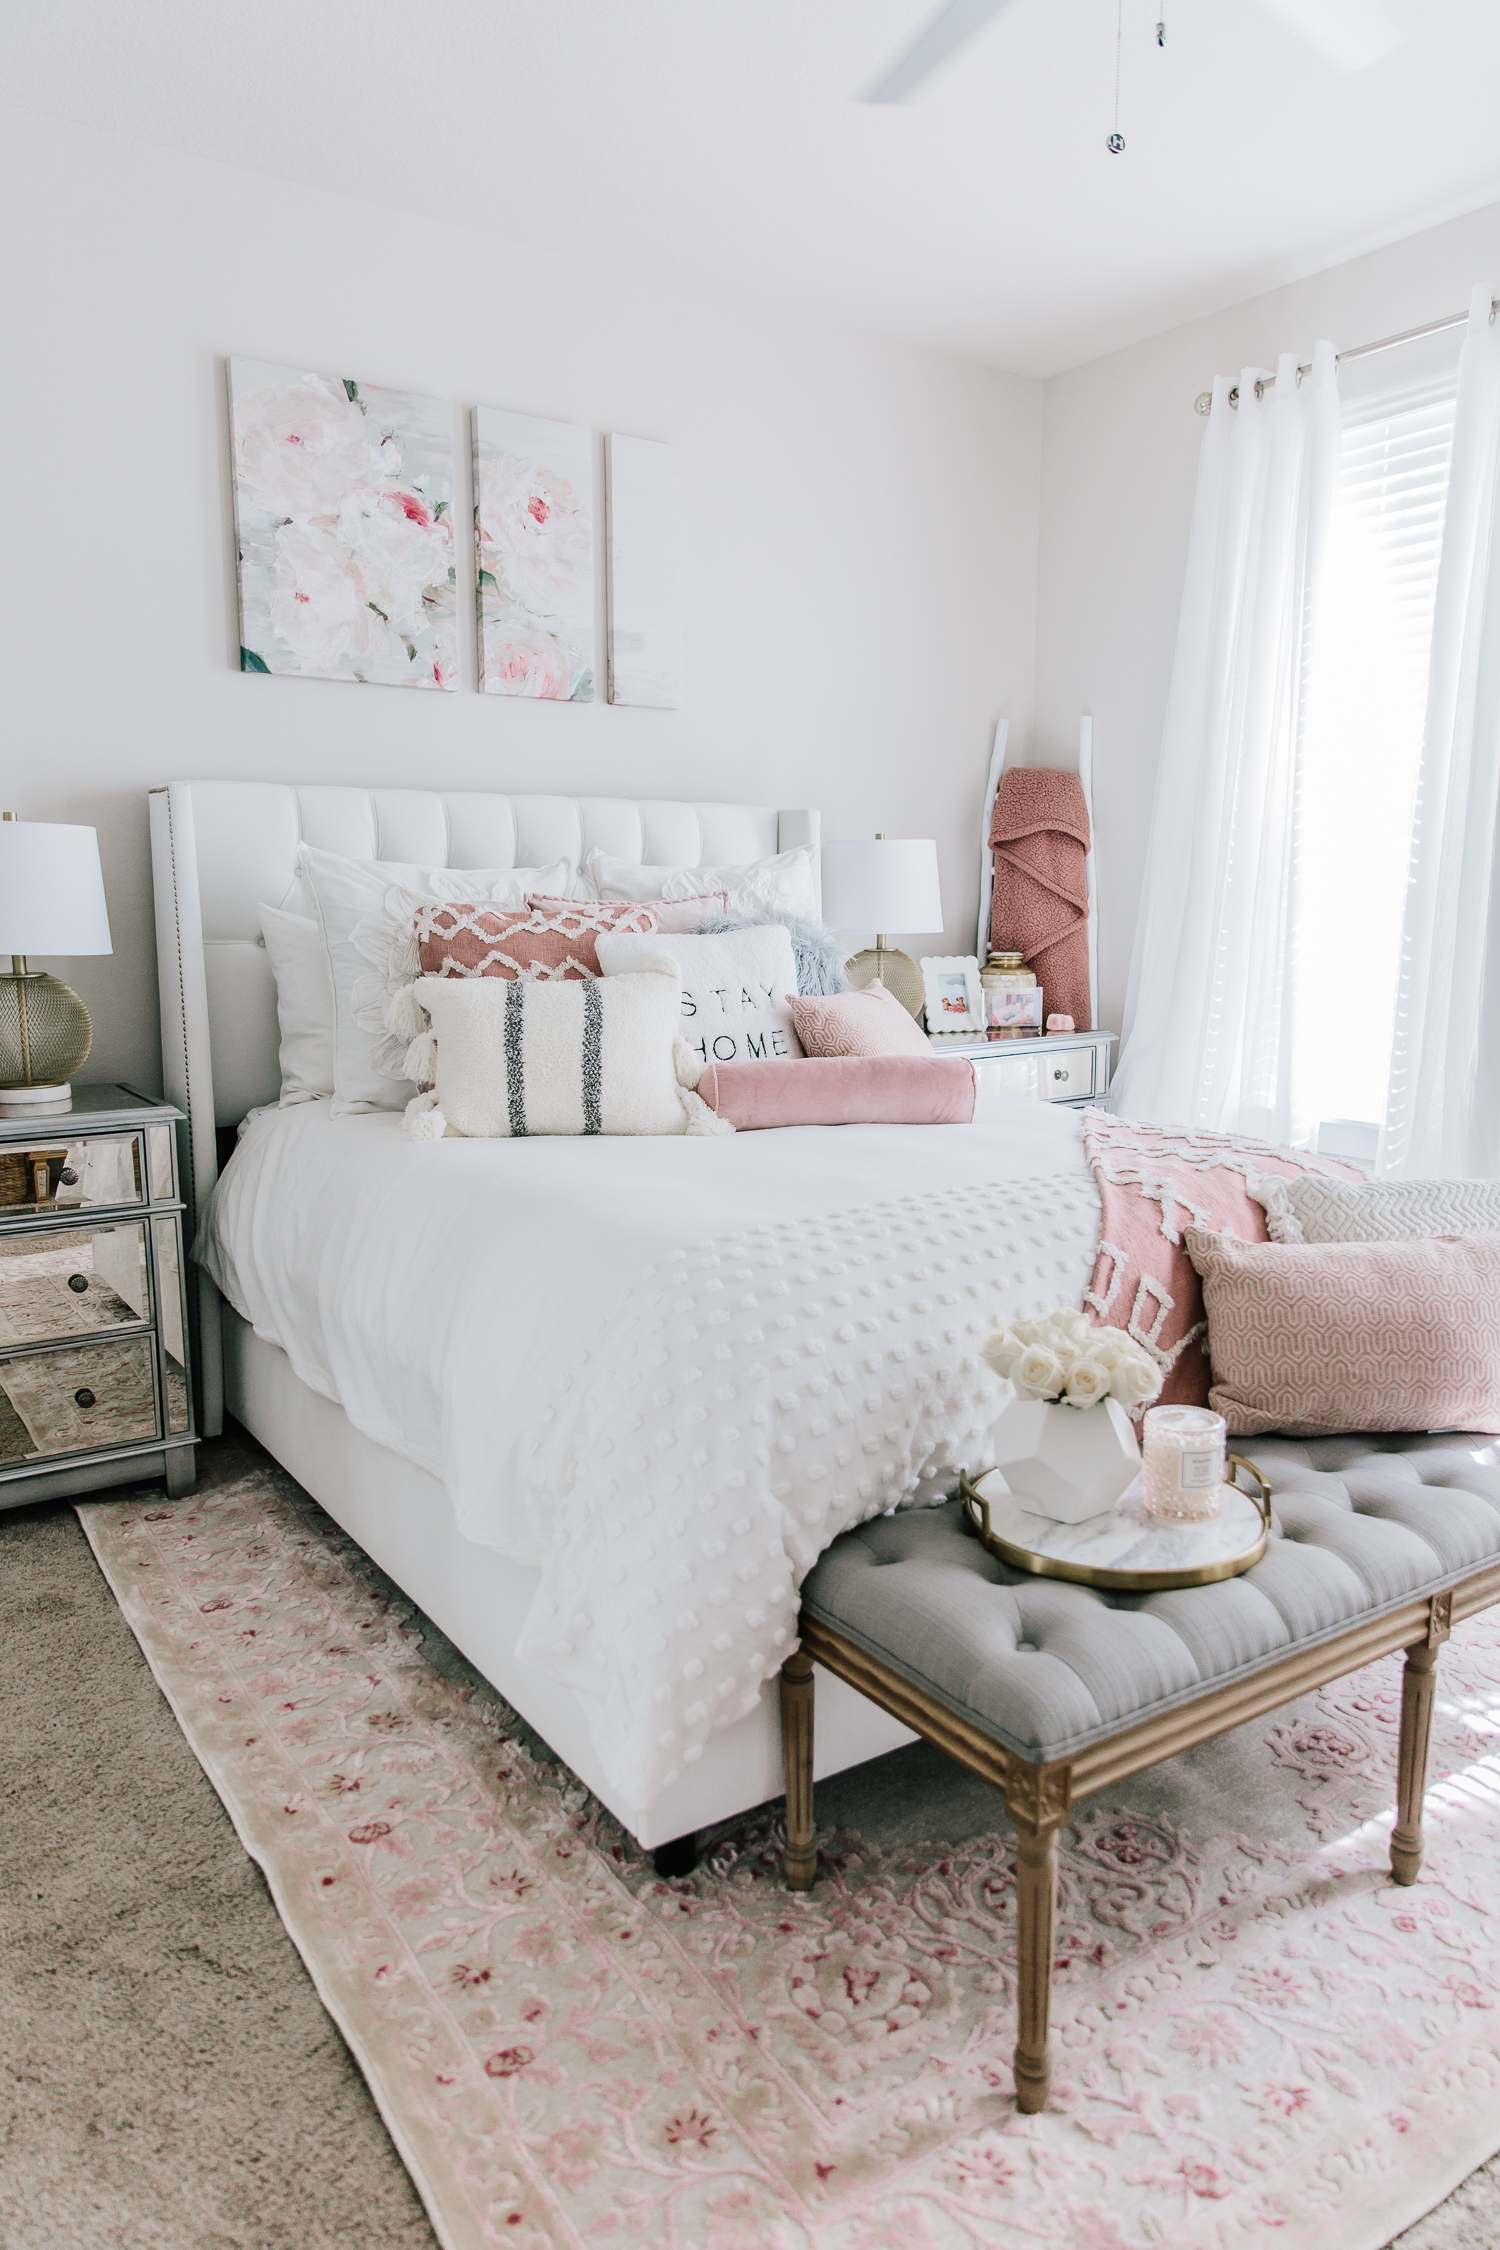 bedroom refresh with affordable buys from urban outfitters